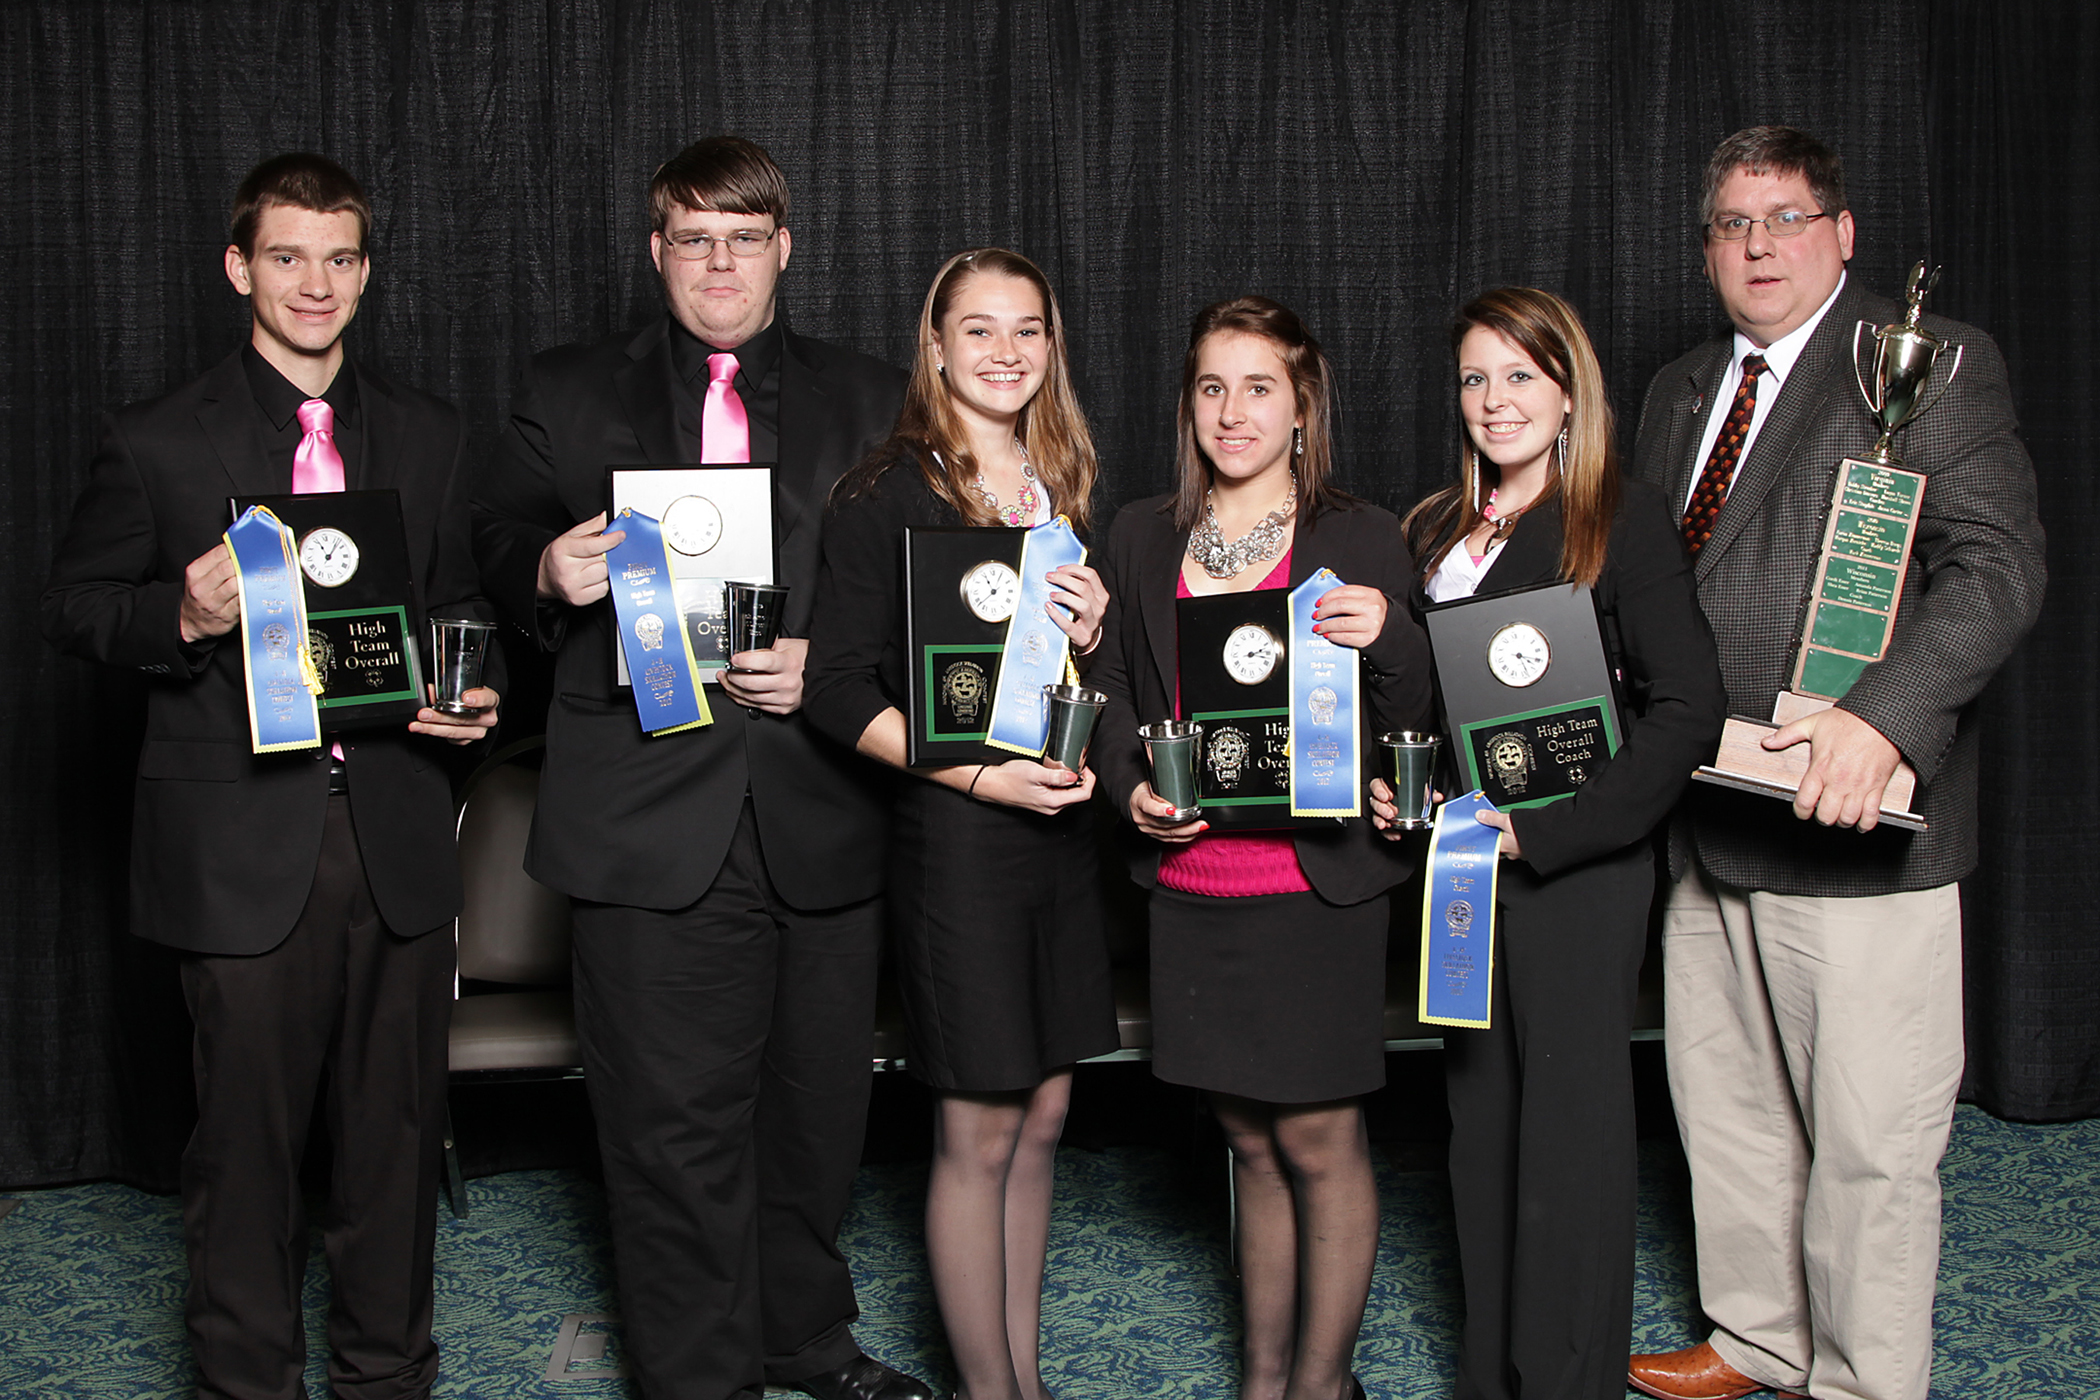 members of the 2012 National Champion 4-H Skillathon Team